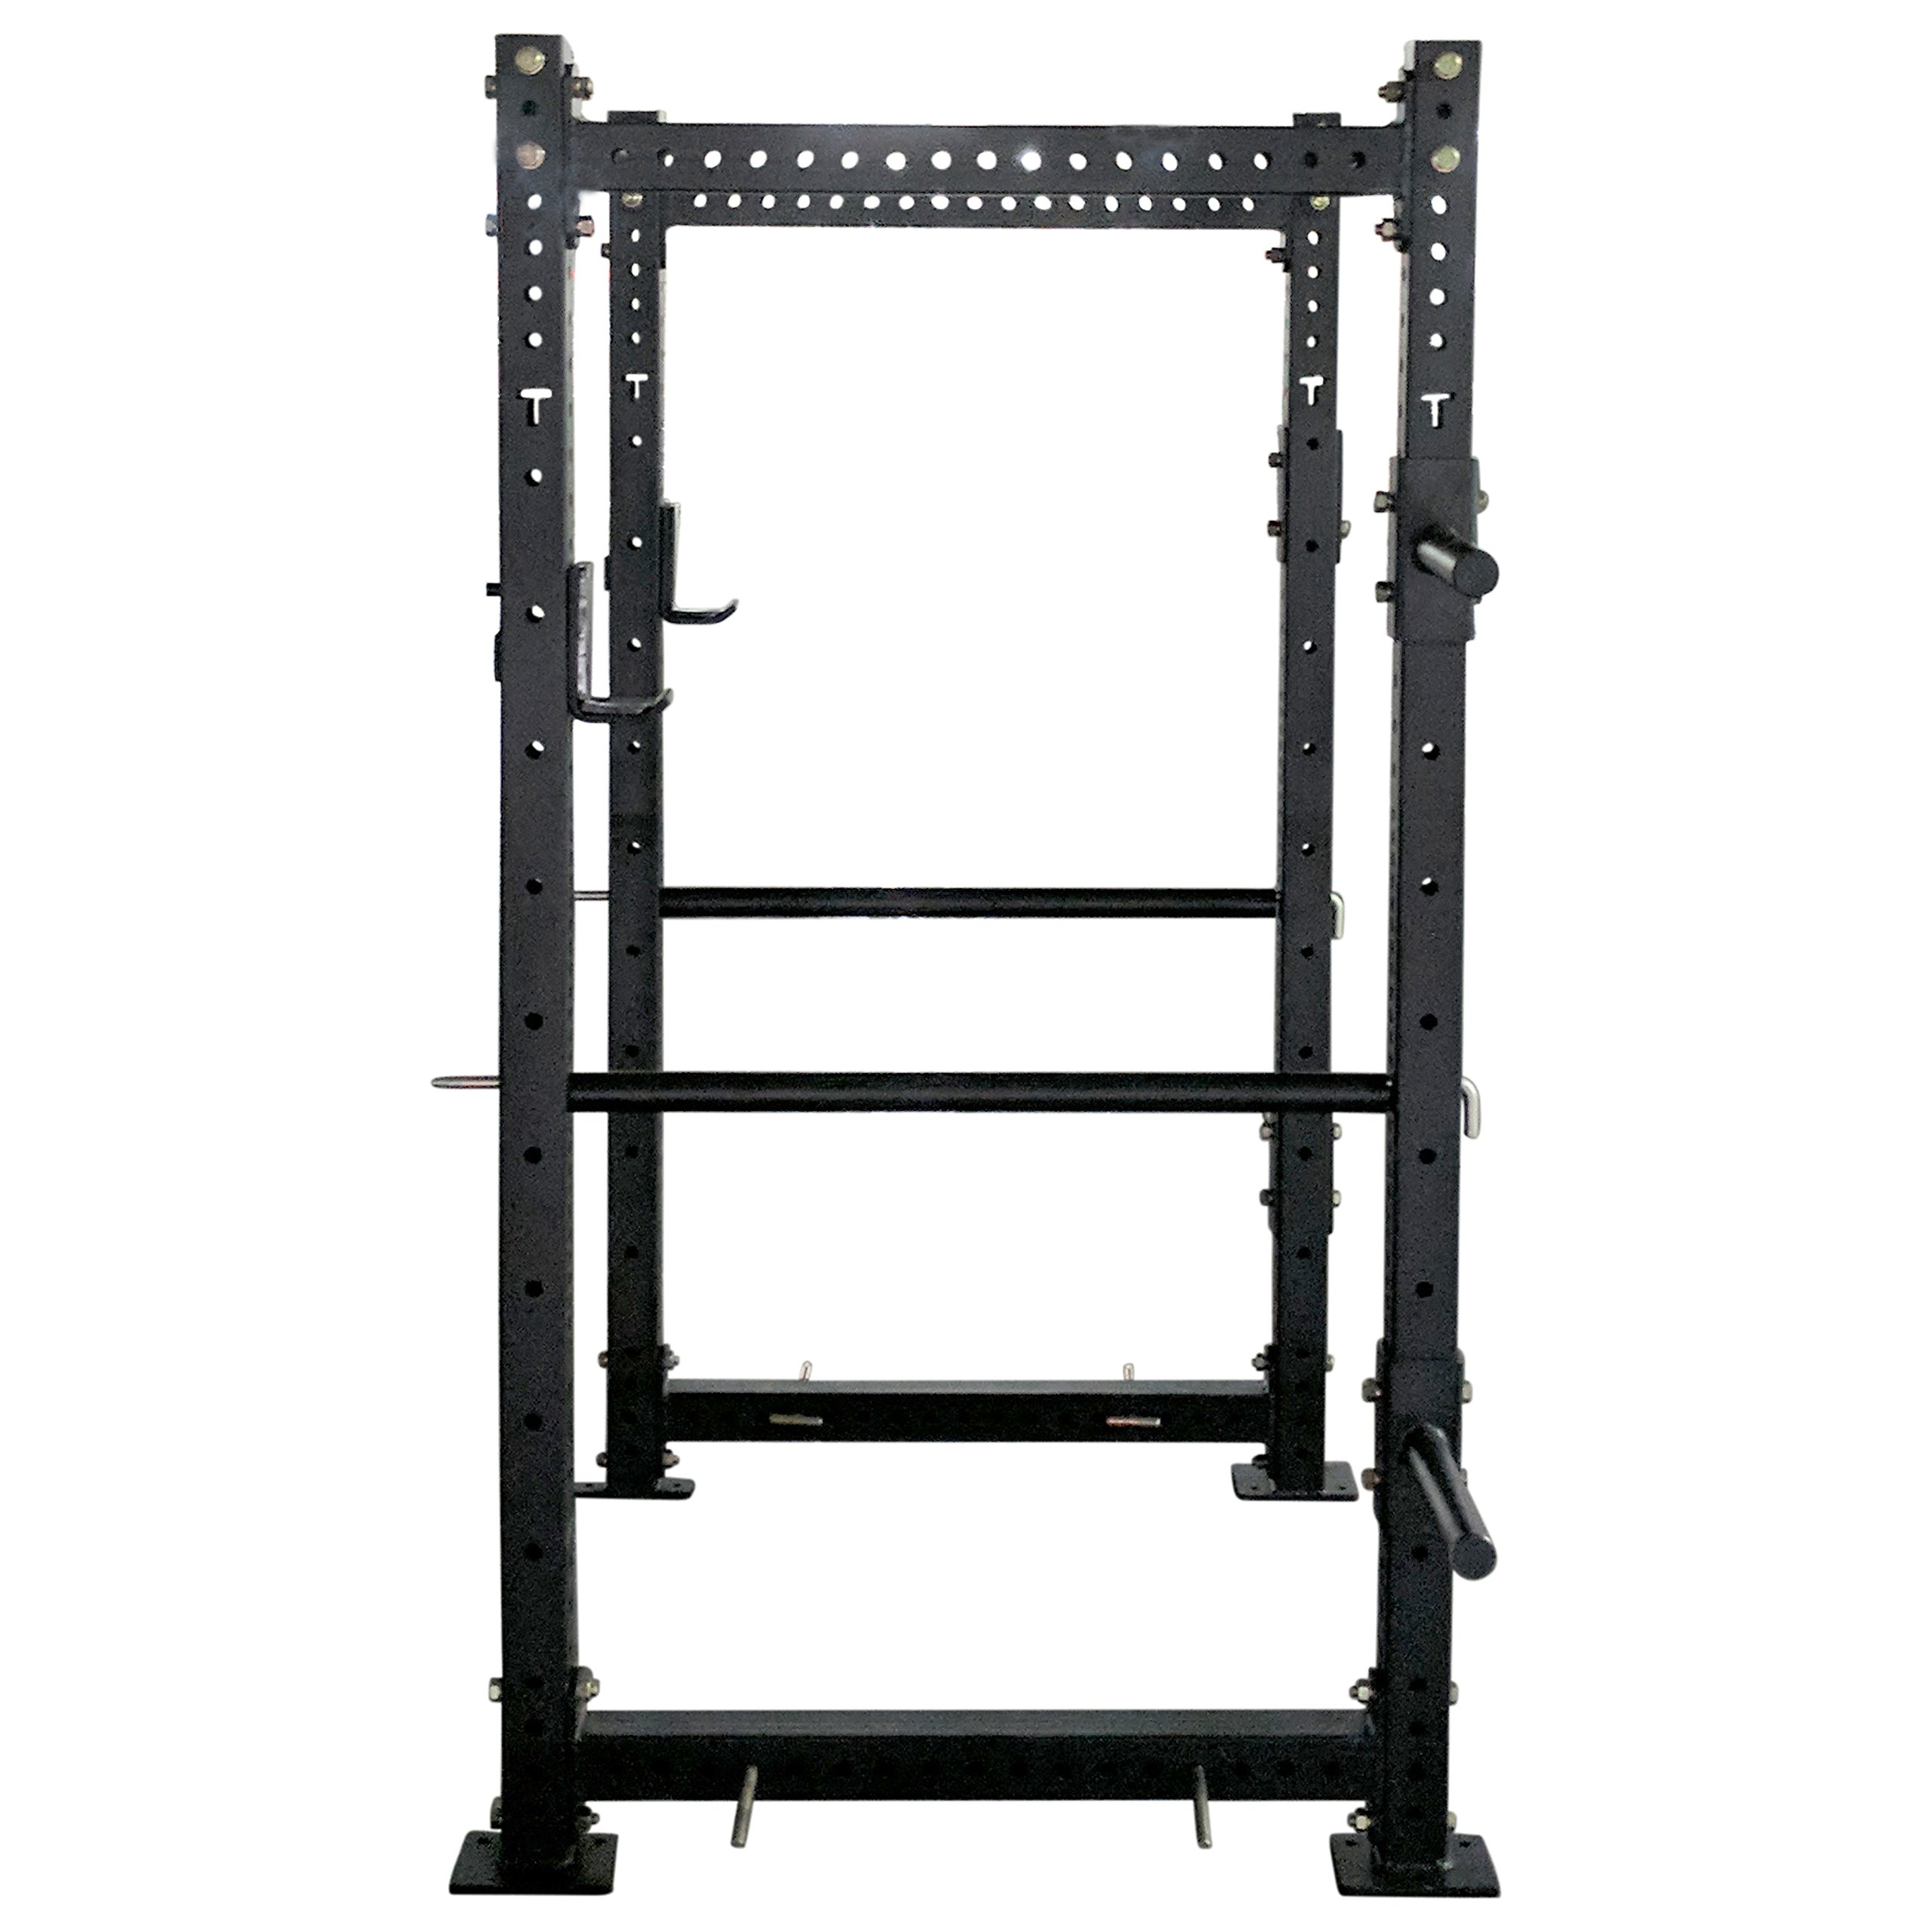 X-3 Short Power Rack - 36'' Depth by Titan Fitness (Image #4)